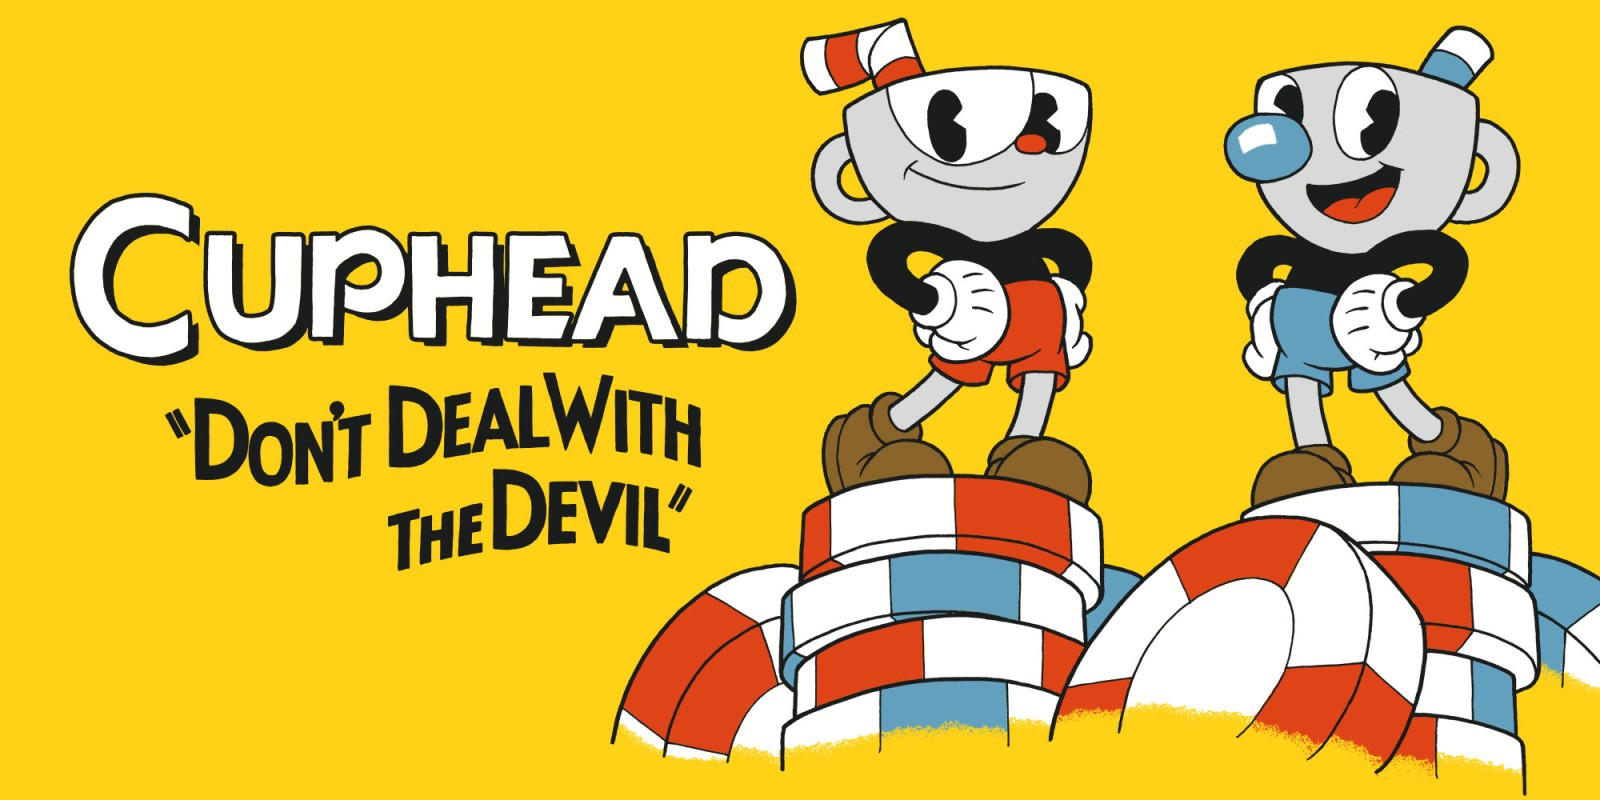 cuphead version tesla